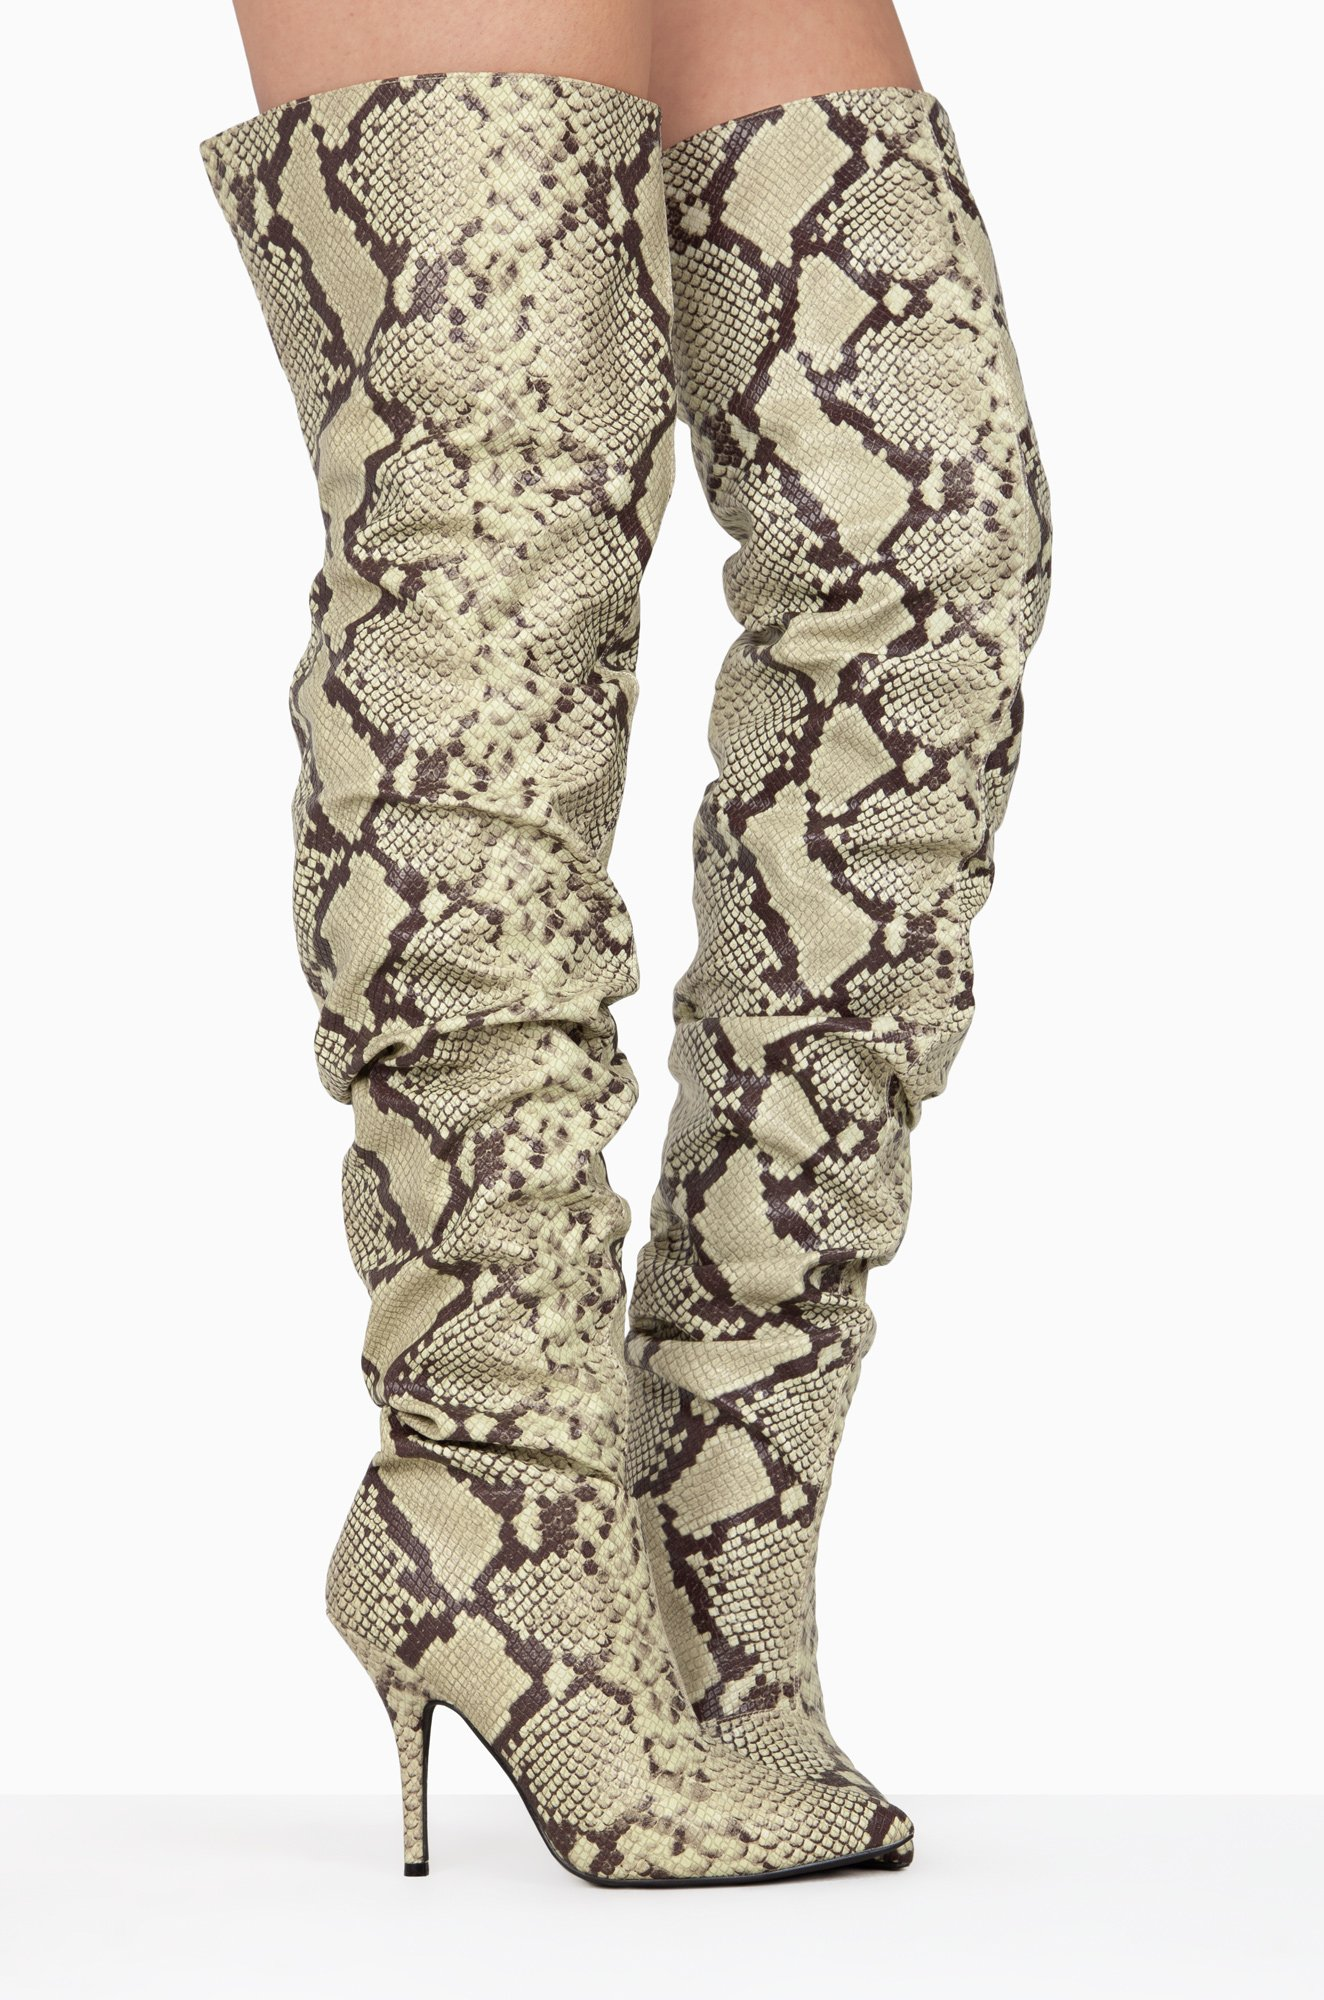 Cape-Robbin-Bown-Snake-Thigh-High-Slouch-Pointed-Toe-Over-The-Knee-Stiletto-Boot thumbnail 39